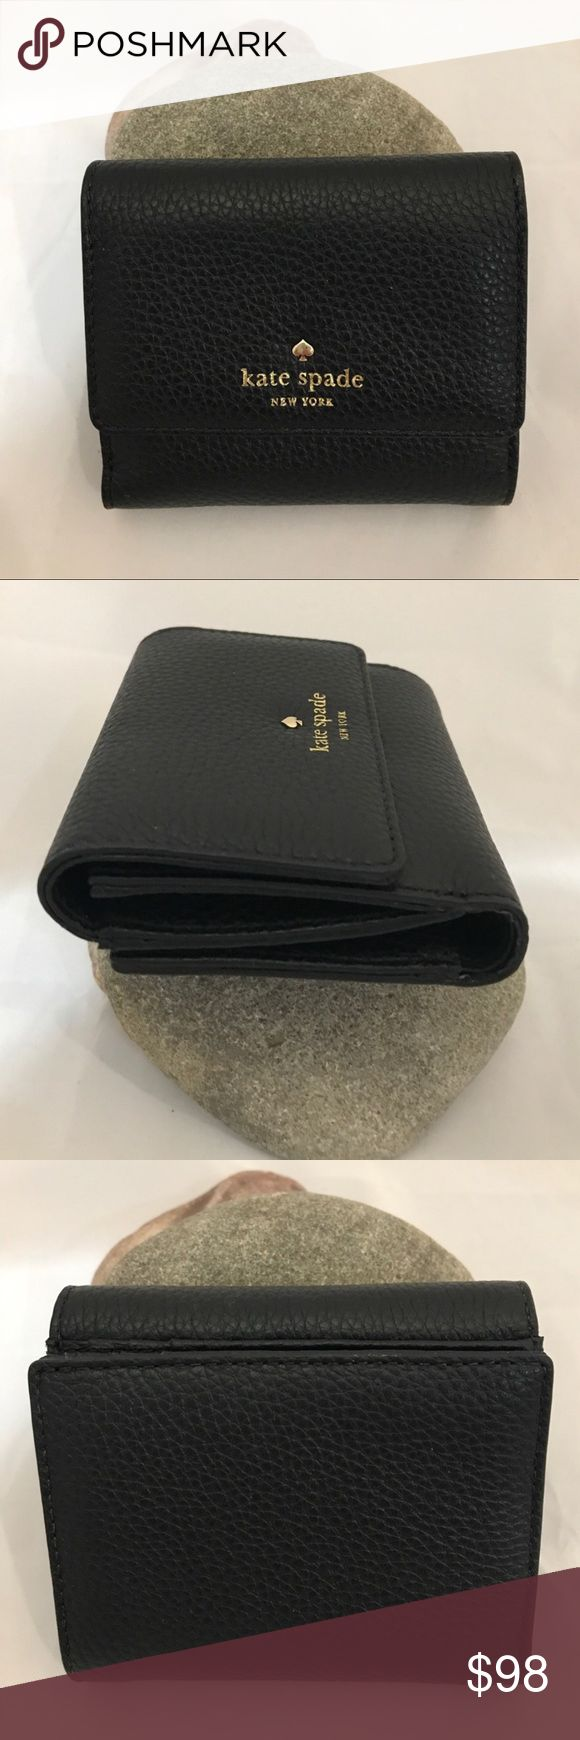 Kate Spade Cobble Hill NWT/Black Wallet Kate Spade Cobble Hill NWT/Black Wallet. NO TRADES. Photos from the Internet could vary slightly from item being shipped.                            soft pebbled cowhide snap closure 6 credit card slots. kate spade Bags Wallets